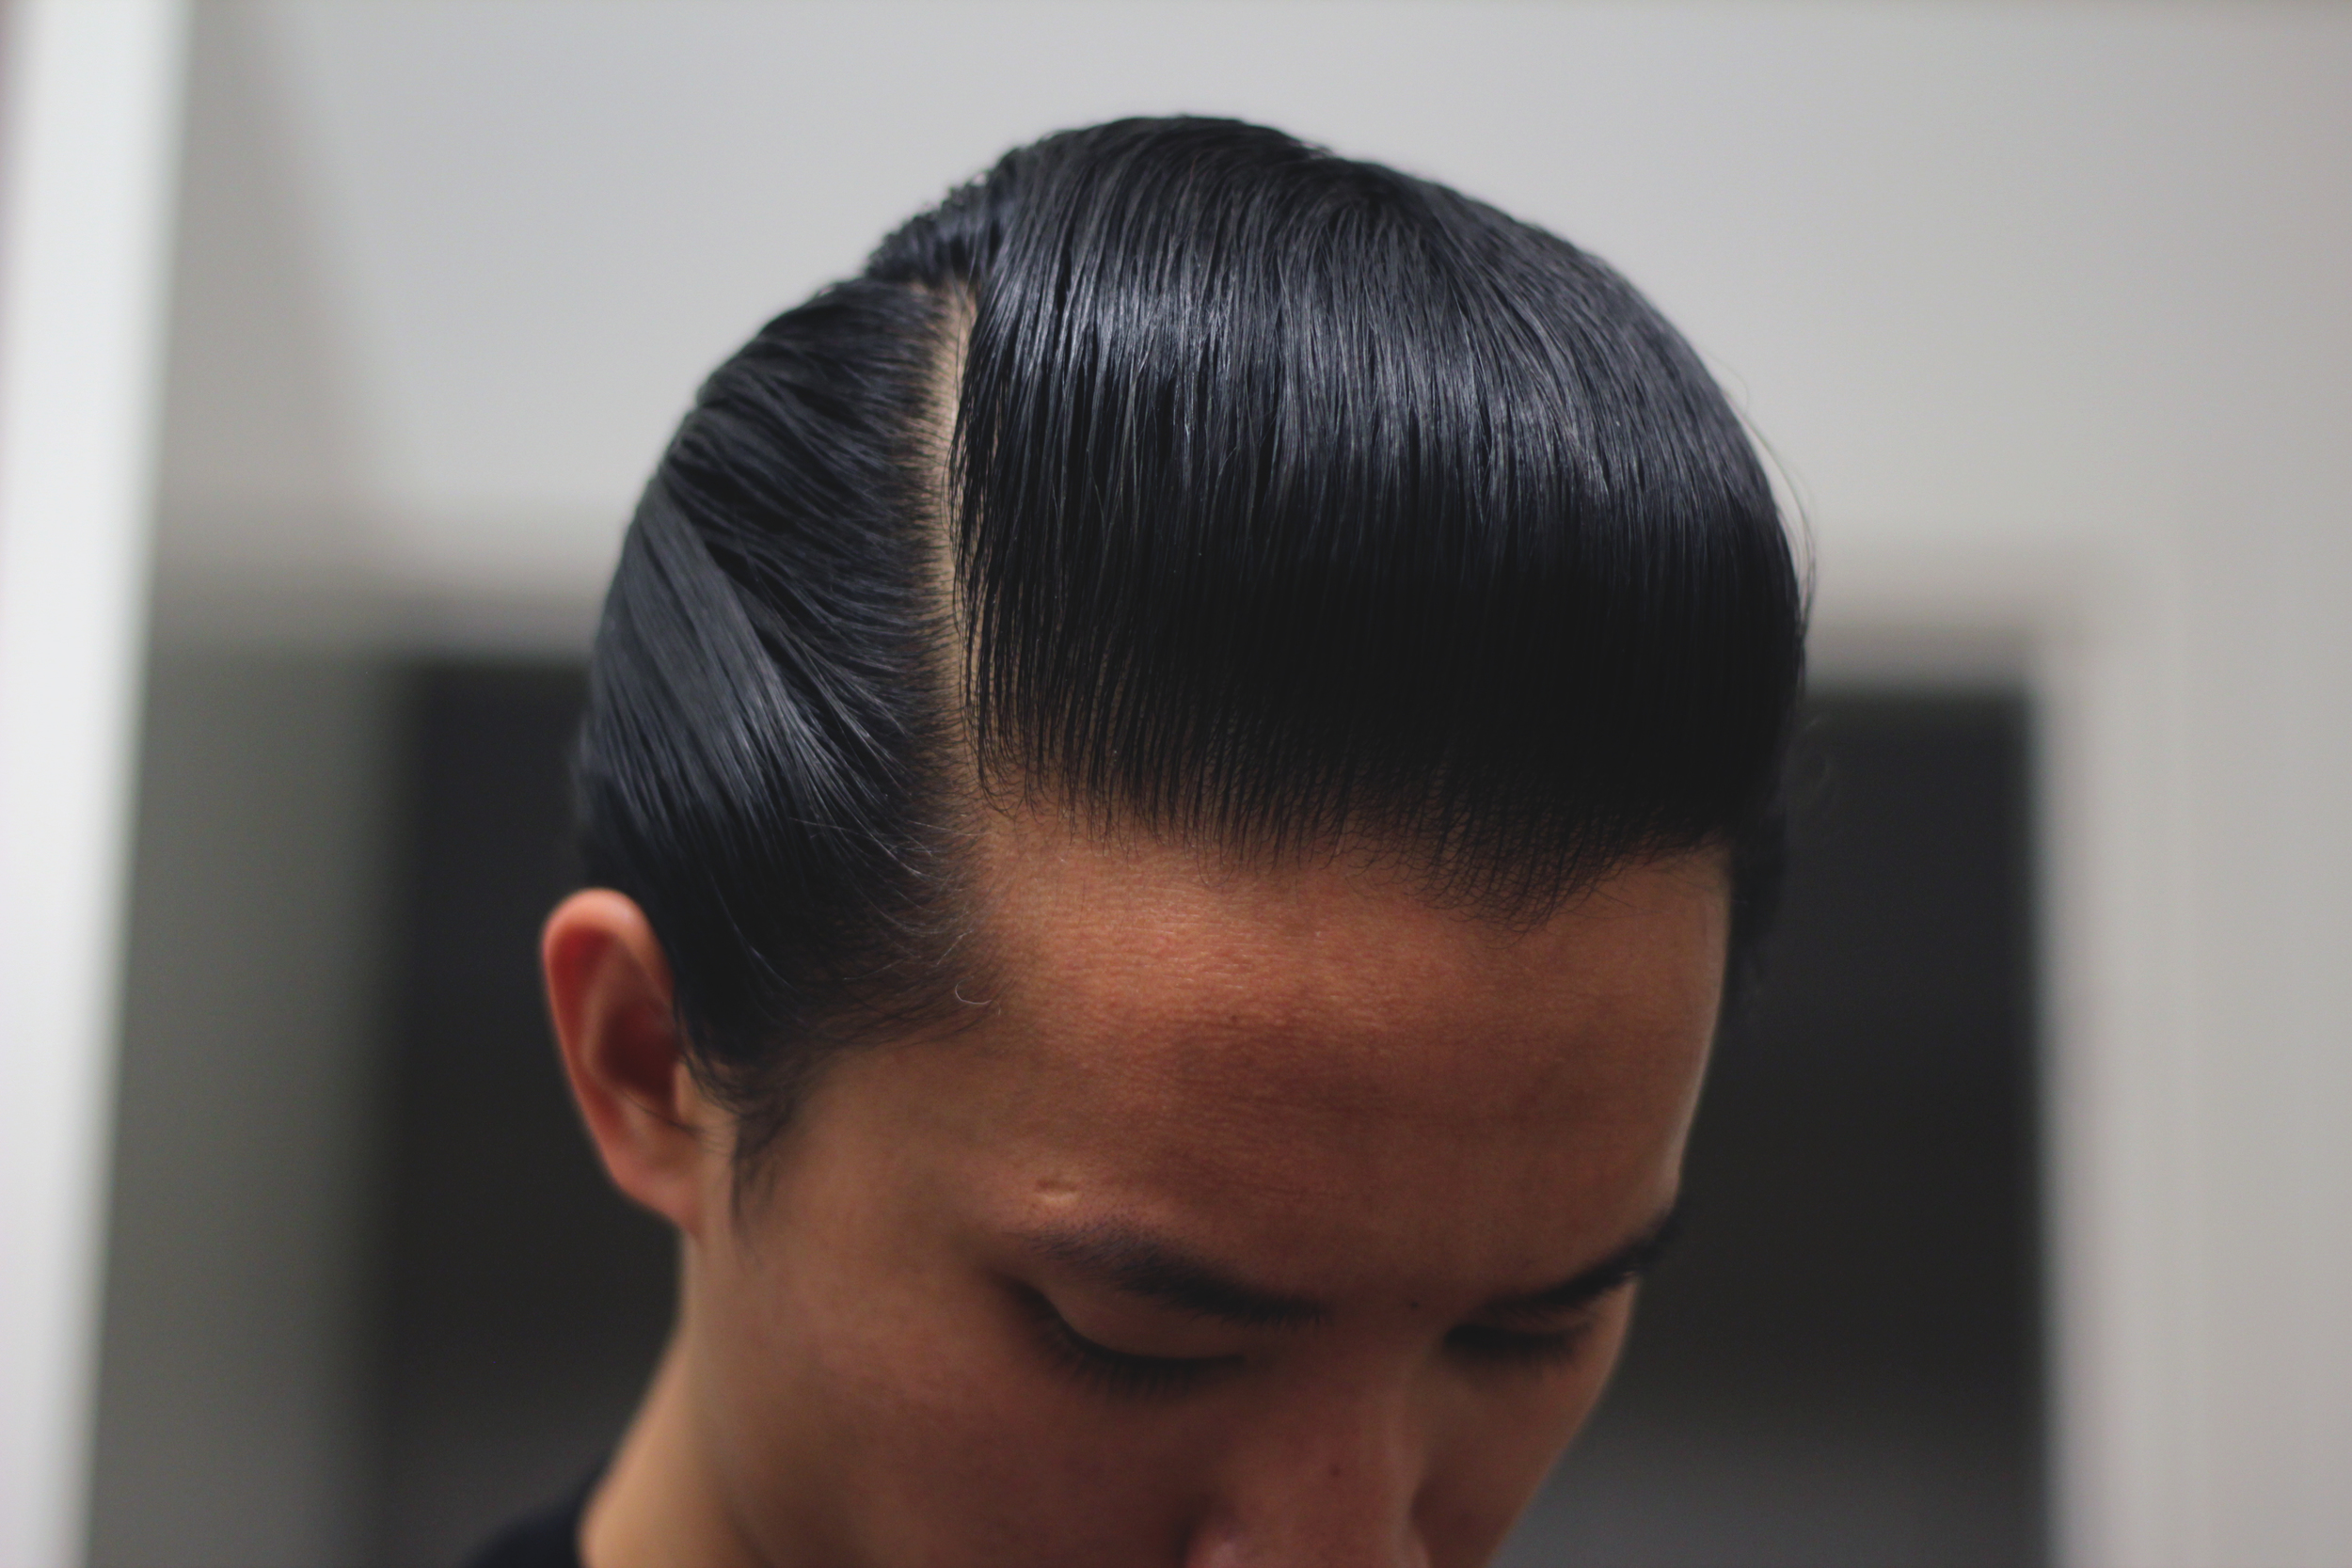 Reuzel Water Soluble High Sheen Pomade part